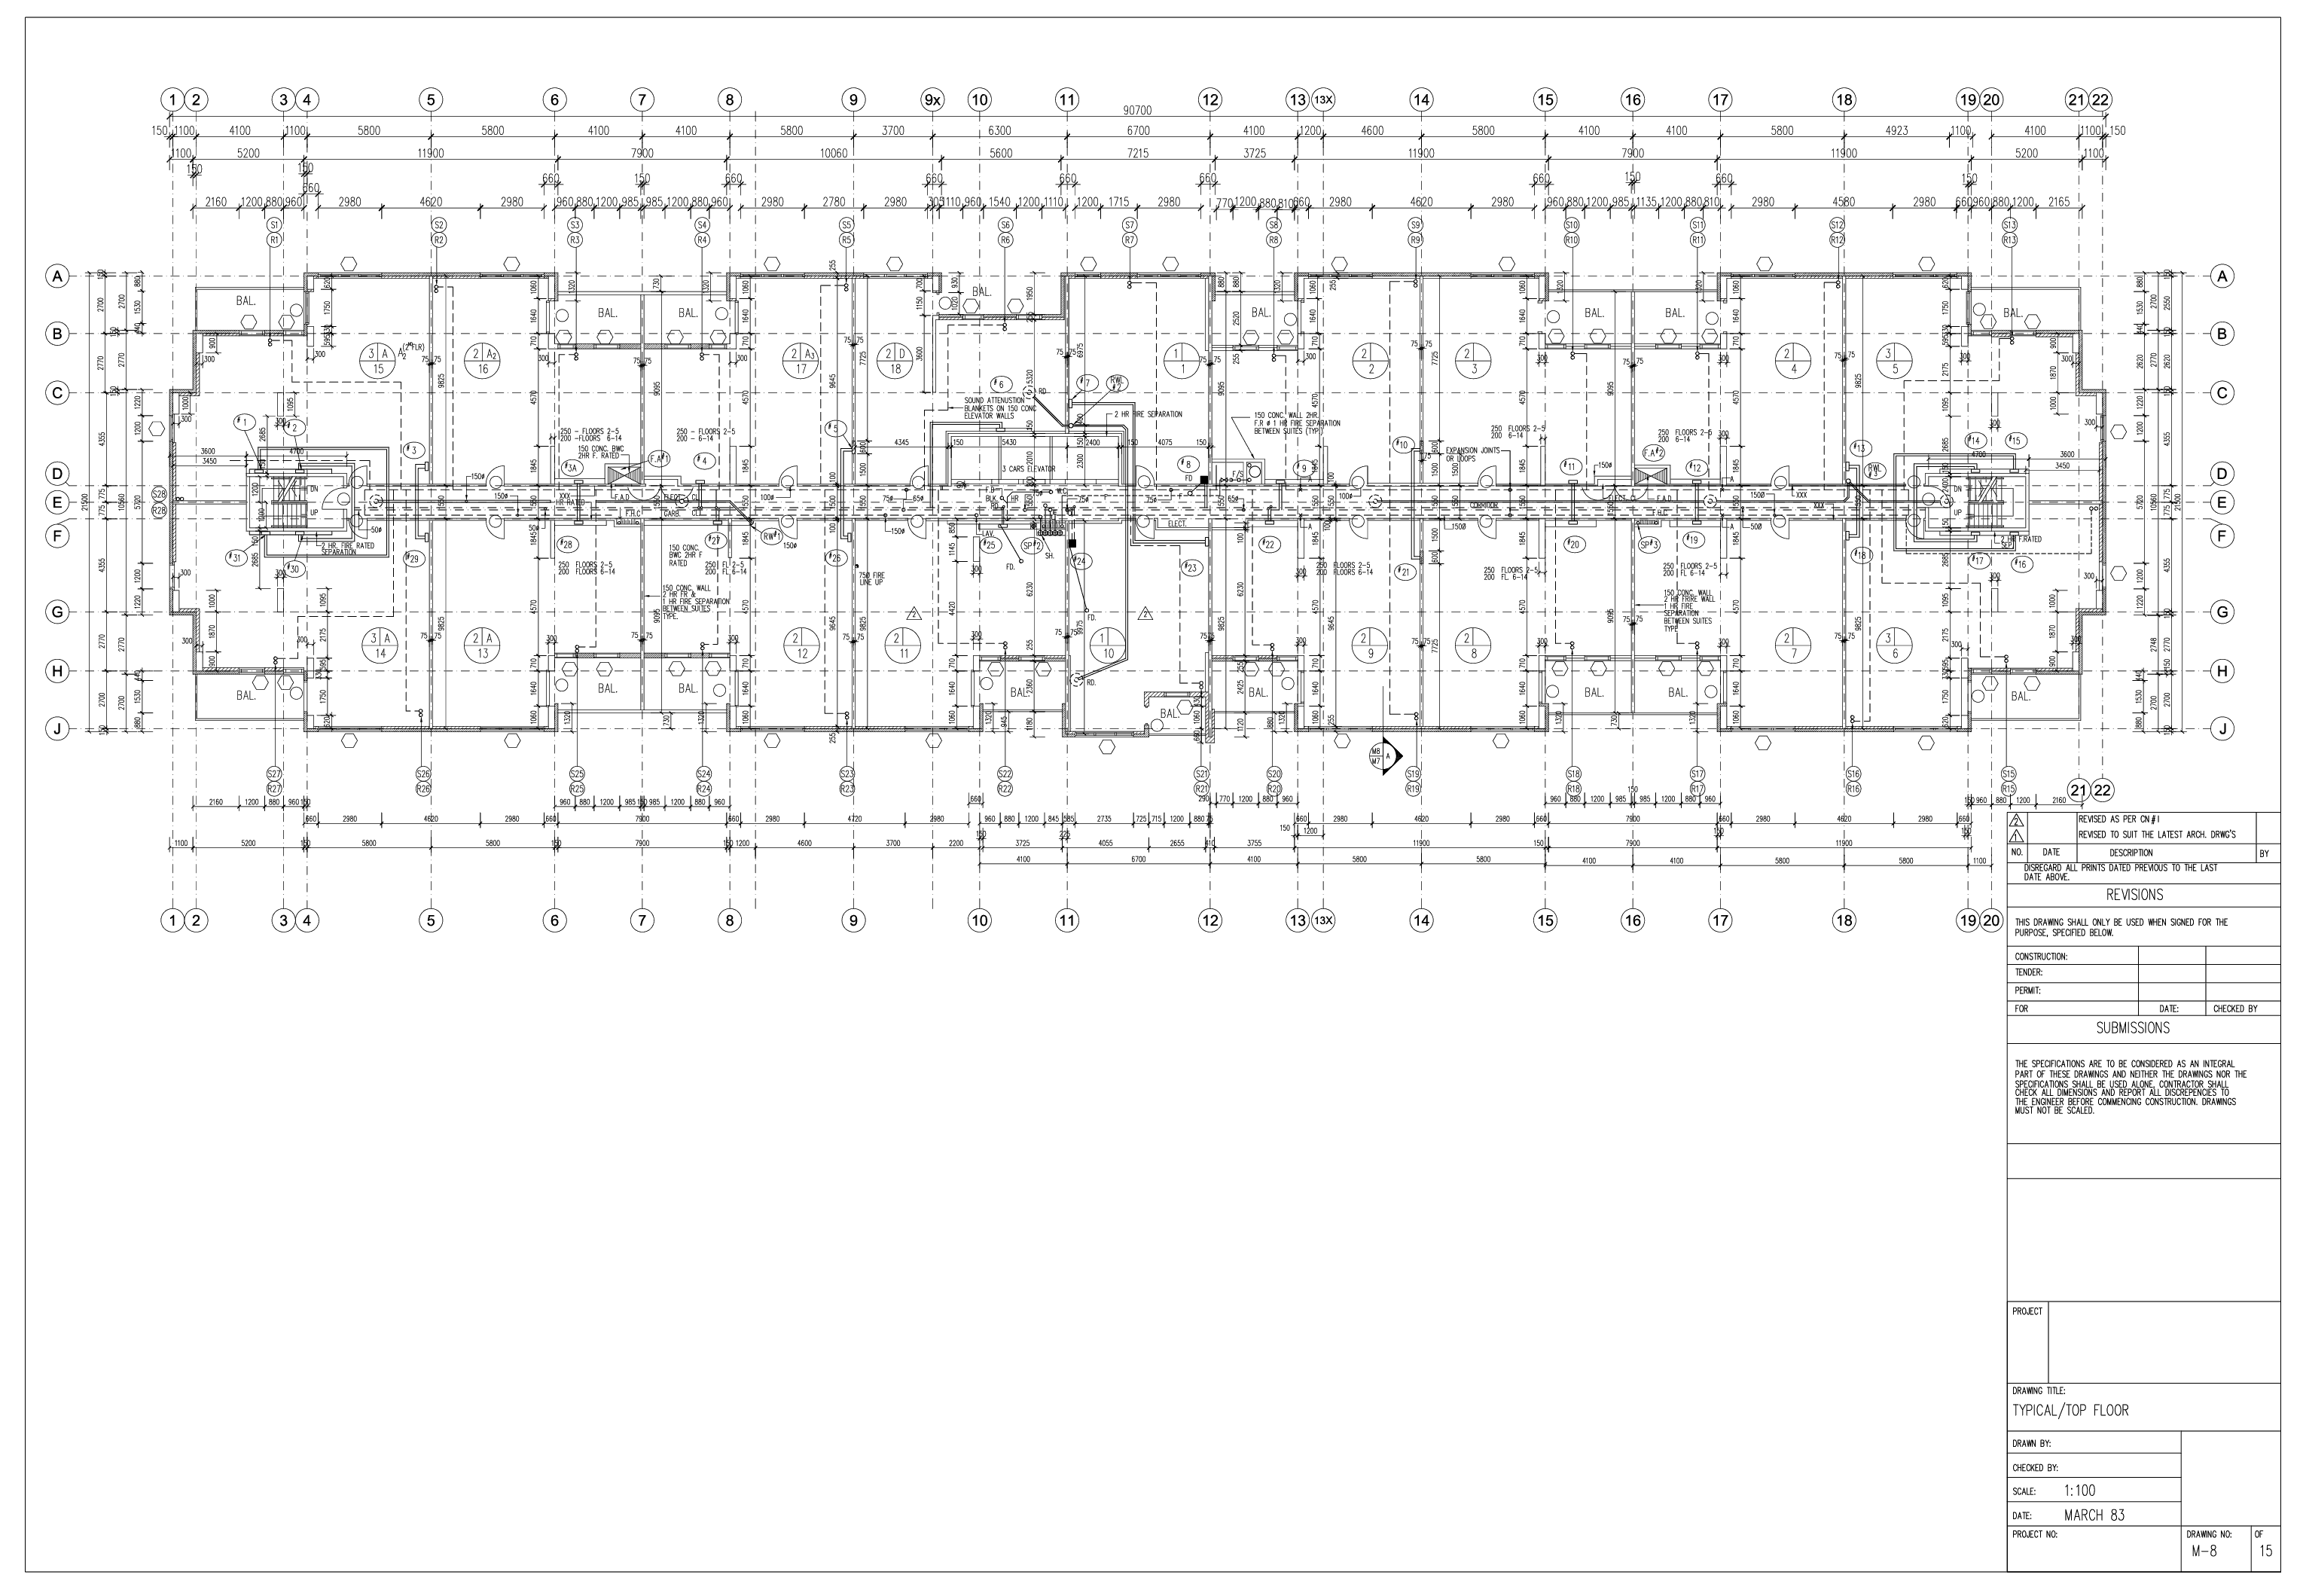 Apartment Building Floor Plan on Grid Layout For Building Construction Line